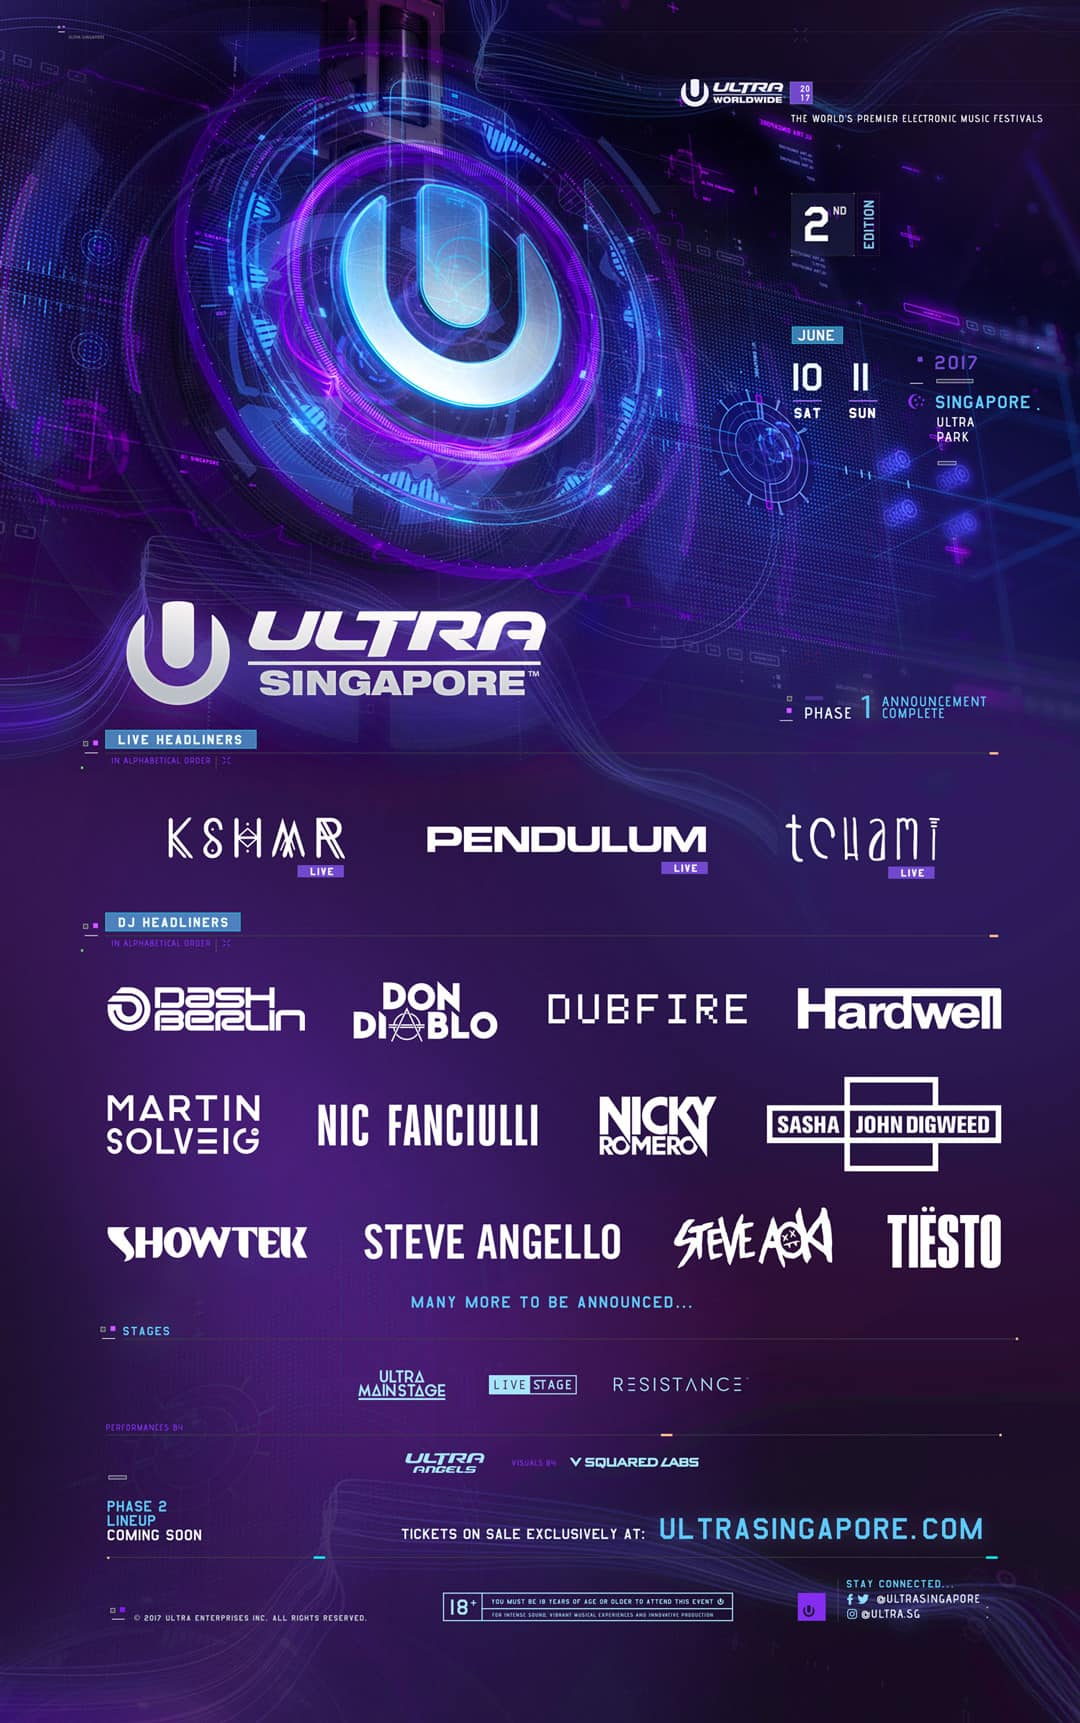 Credit: Ultra Singapore 2017